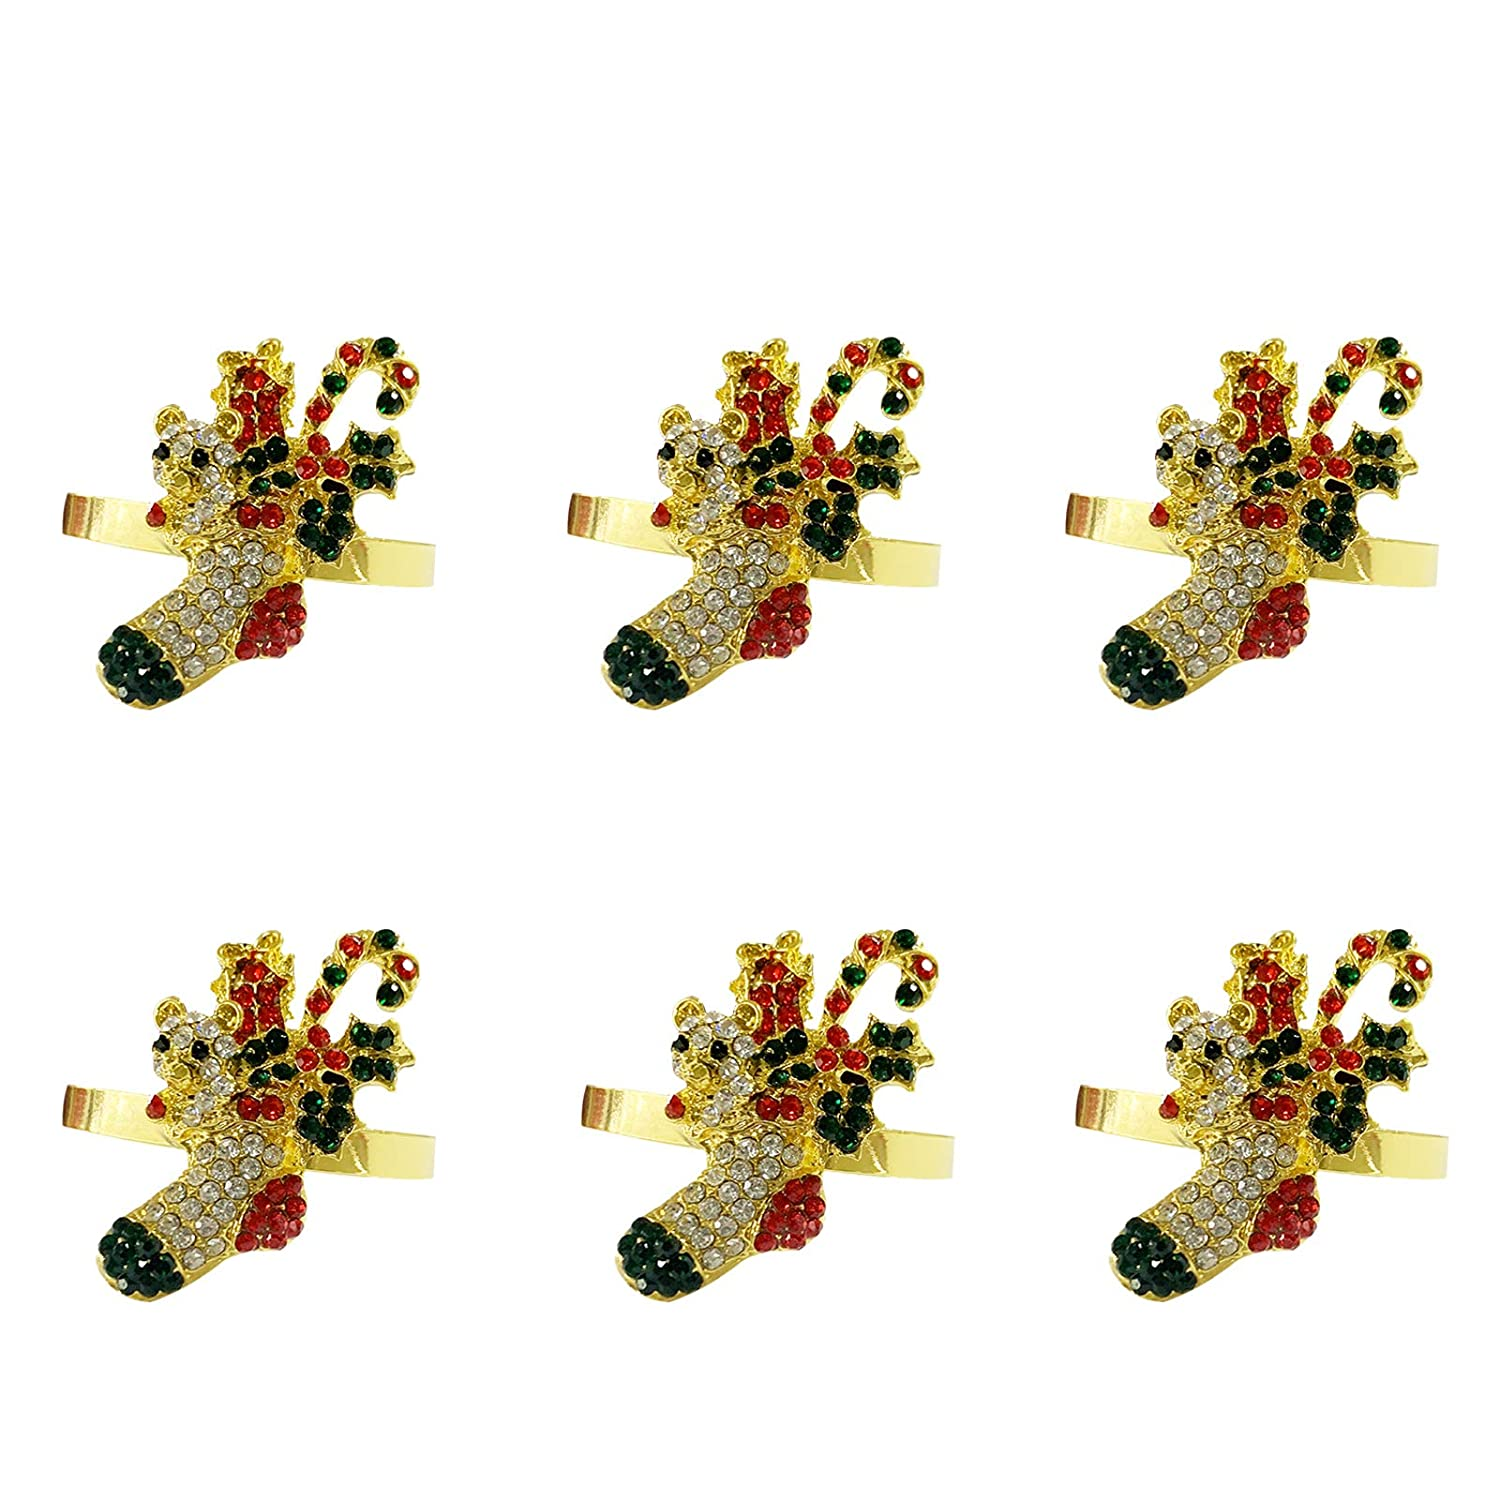 LogHog Christmas Tree Napkin Rings Set of 6 Delicate Napkin Ring Buckles Table Decorations for Christmas Thanksgiving Family Gatherings Parties Decor Favor Xmas Tree